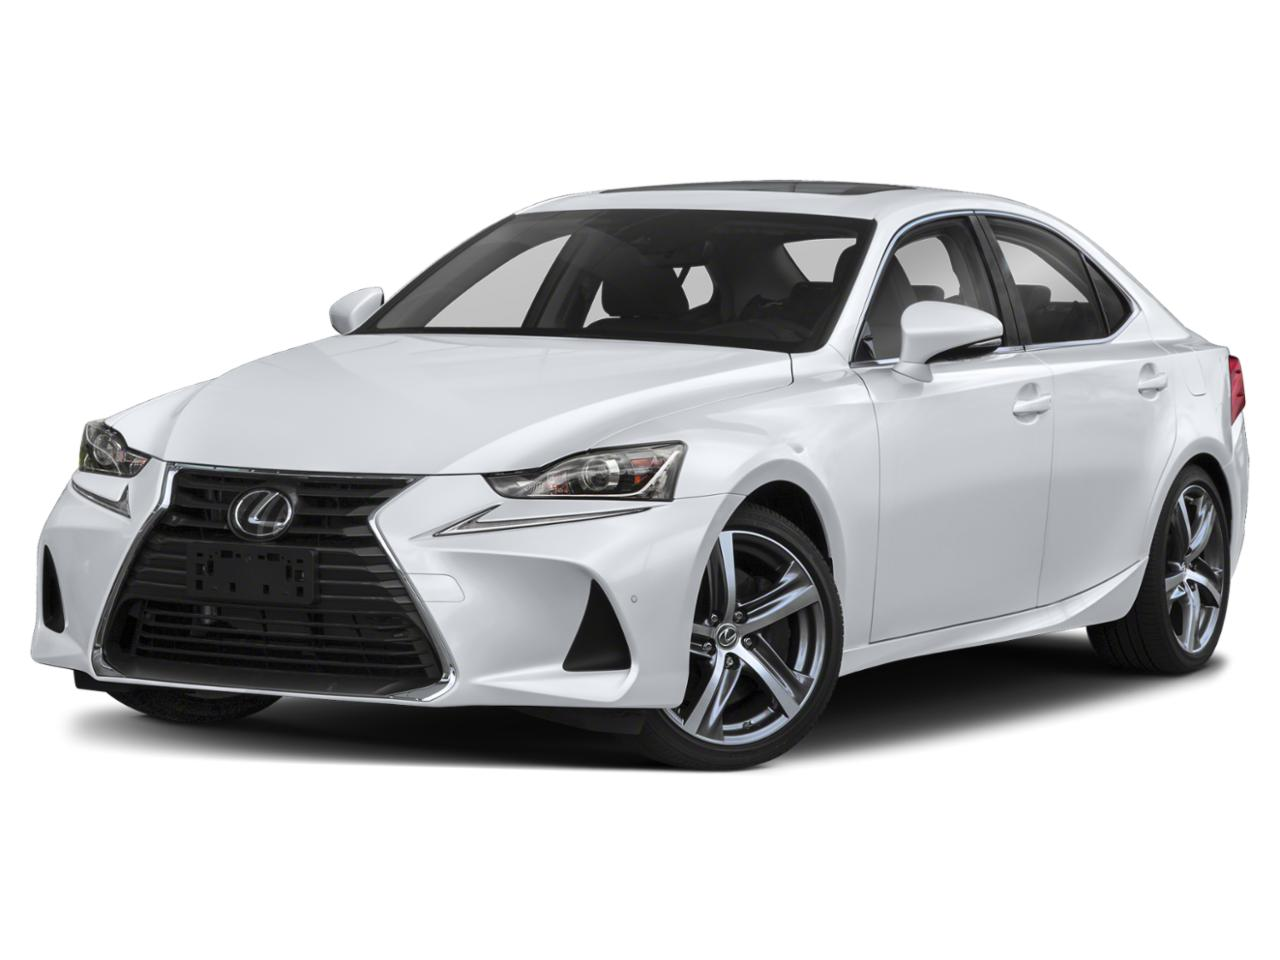 2020 Lexus IS Vehicle Photo in Appleton, WI 54913